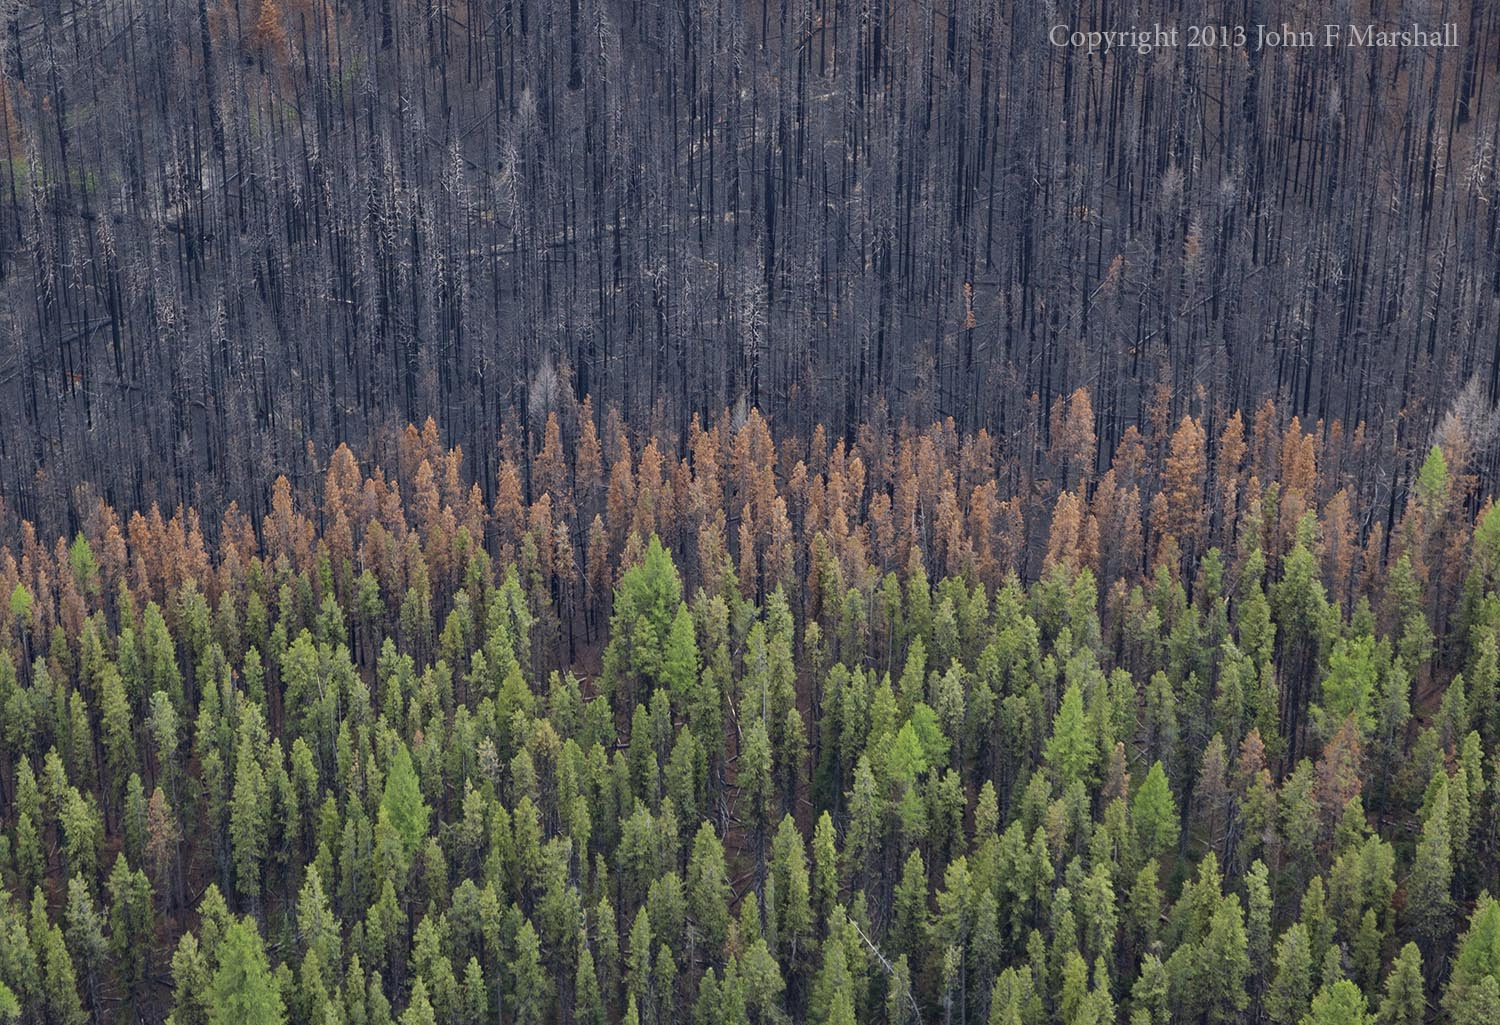 Aerial photo over Table Mountain Fire area.  Cle Elum R.D. Okanogan Wenatchee National Forest, WA